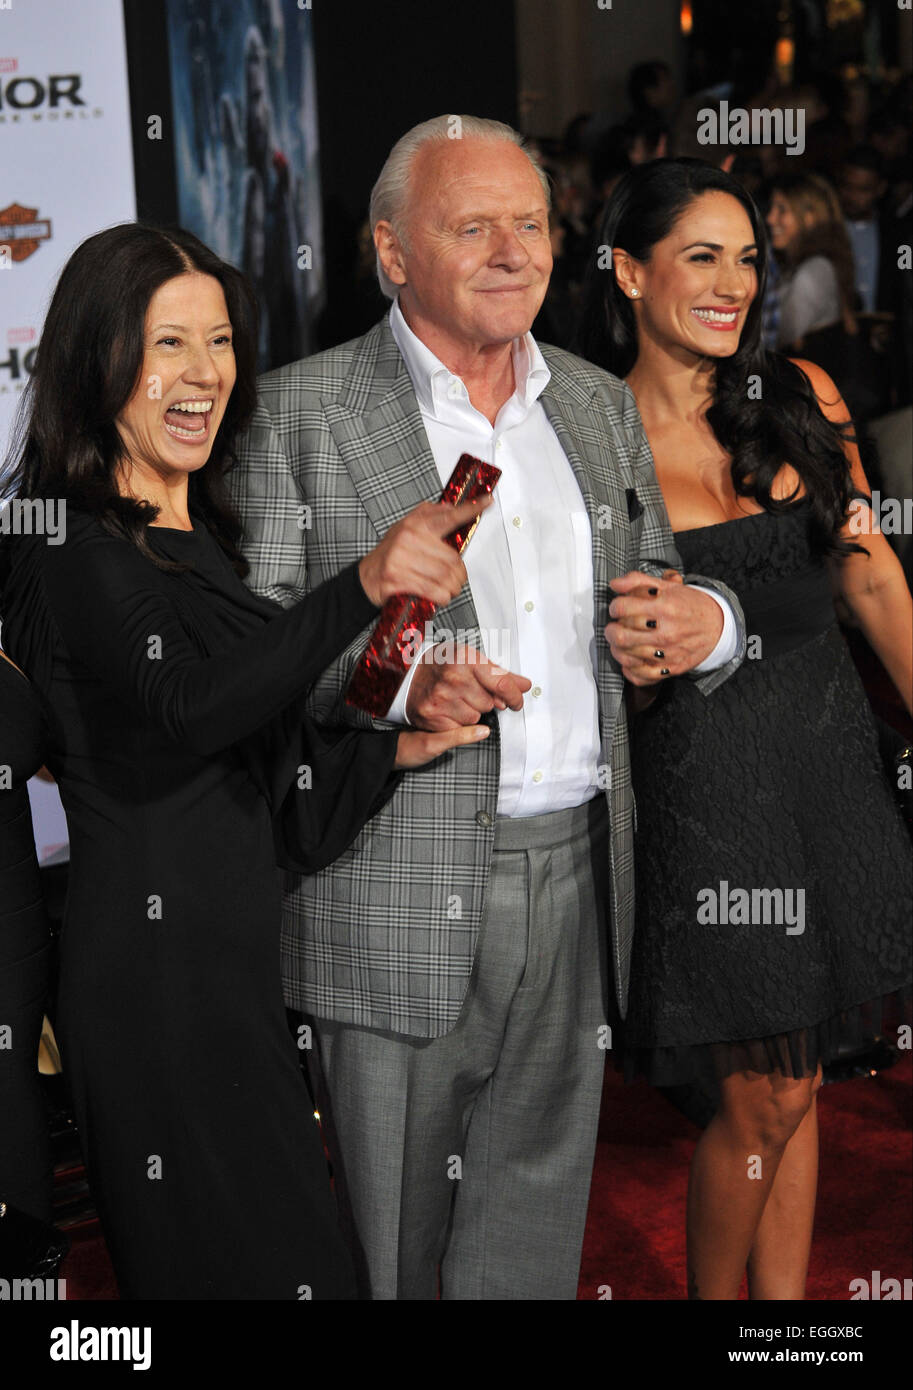 Actor Anthony Hopkins Wife Stella Stock Photos & Actor ...